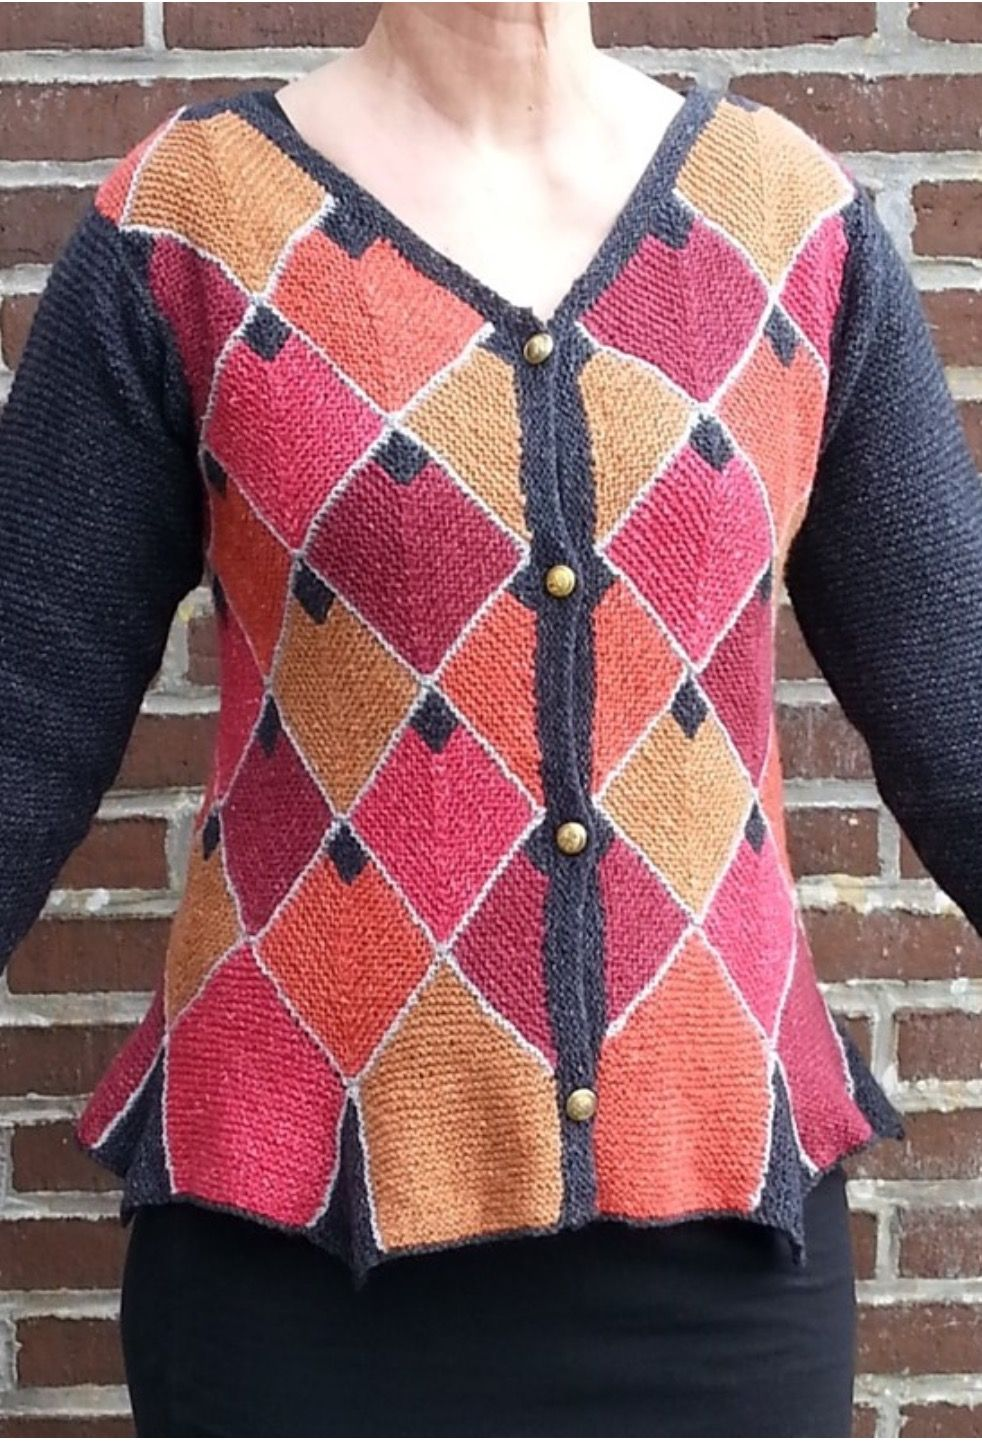 Fancy Domino Knitting Patterns Images - Sewing Pattern for Wedding ...